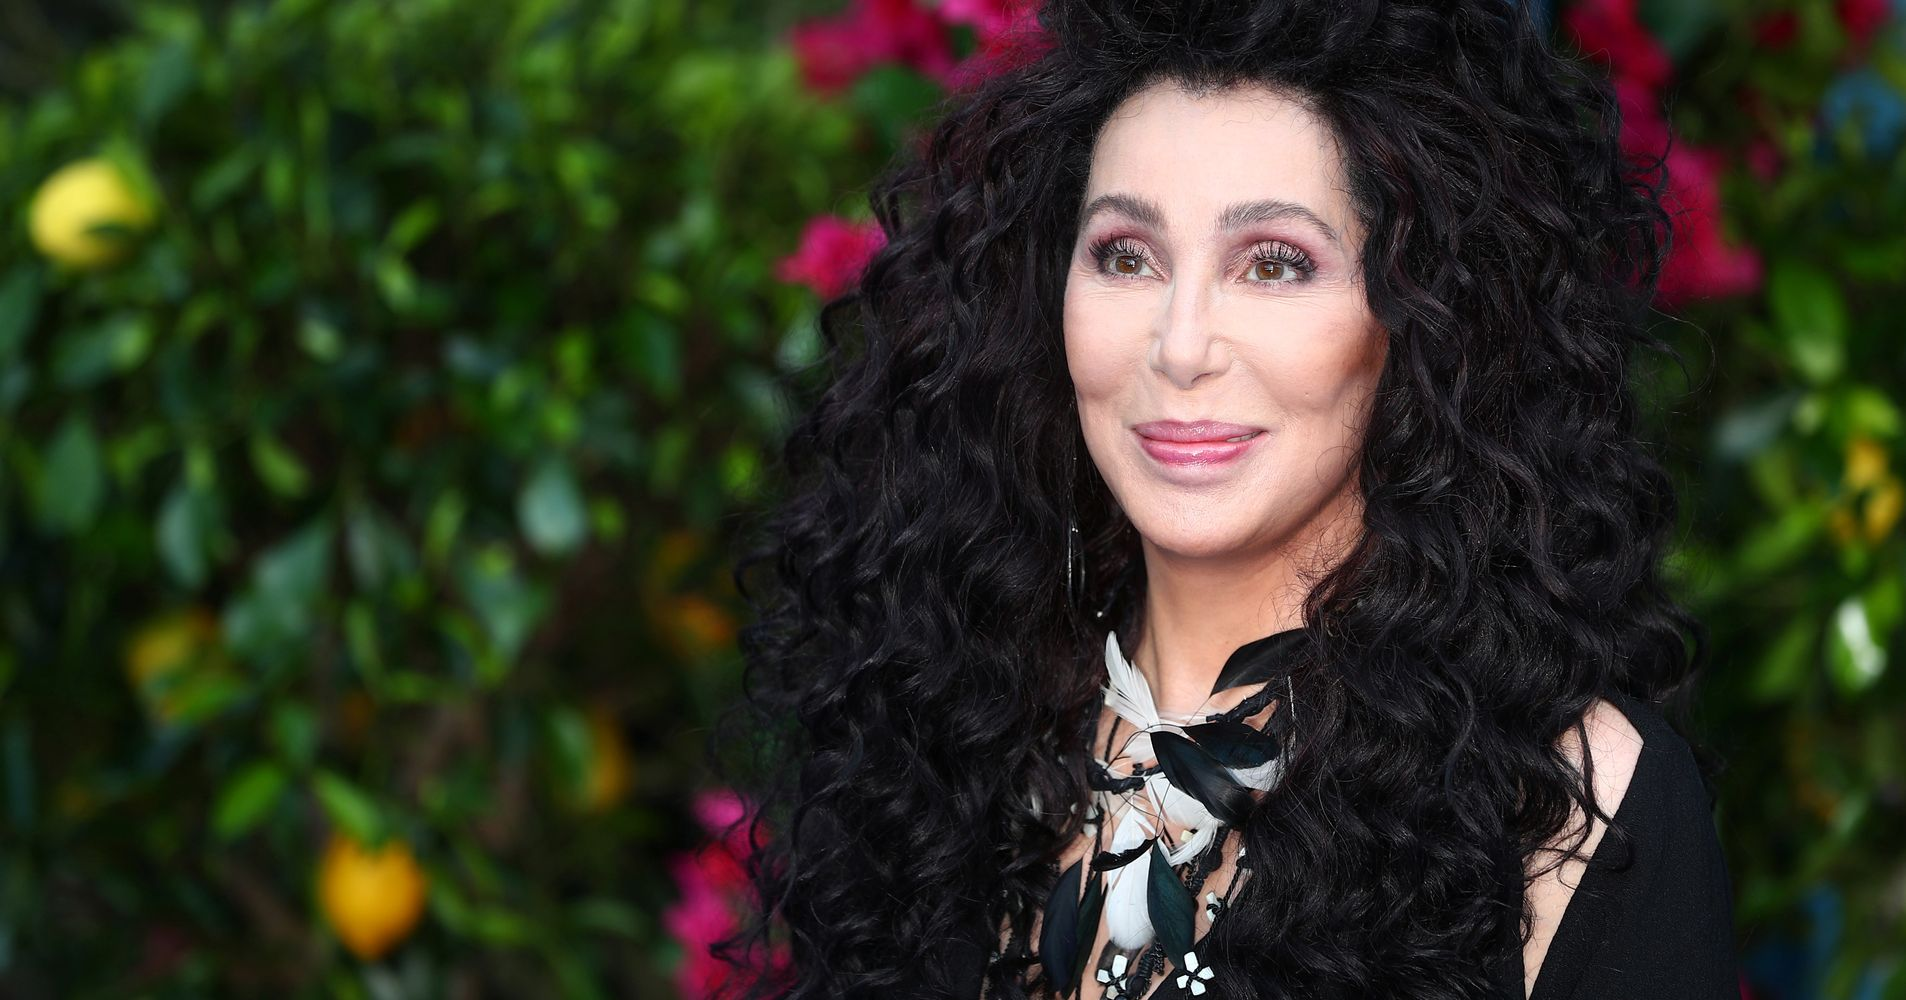 Cher Just Released Her Cover Of ABBA's 'Gimme! Gimme